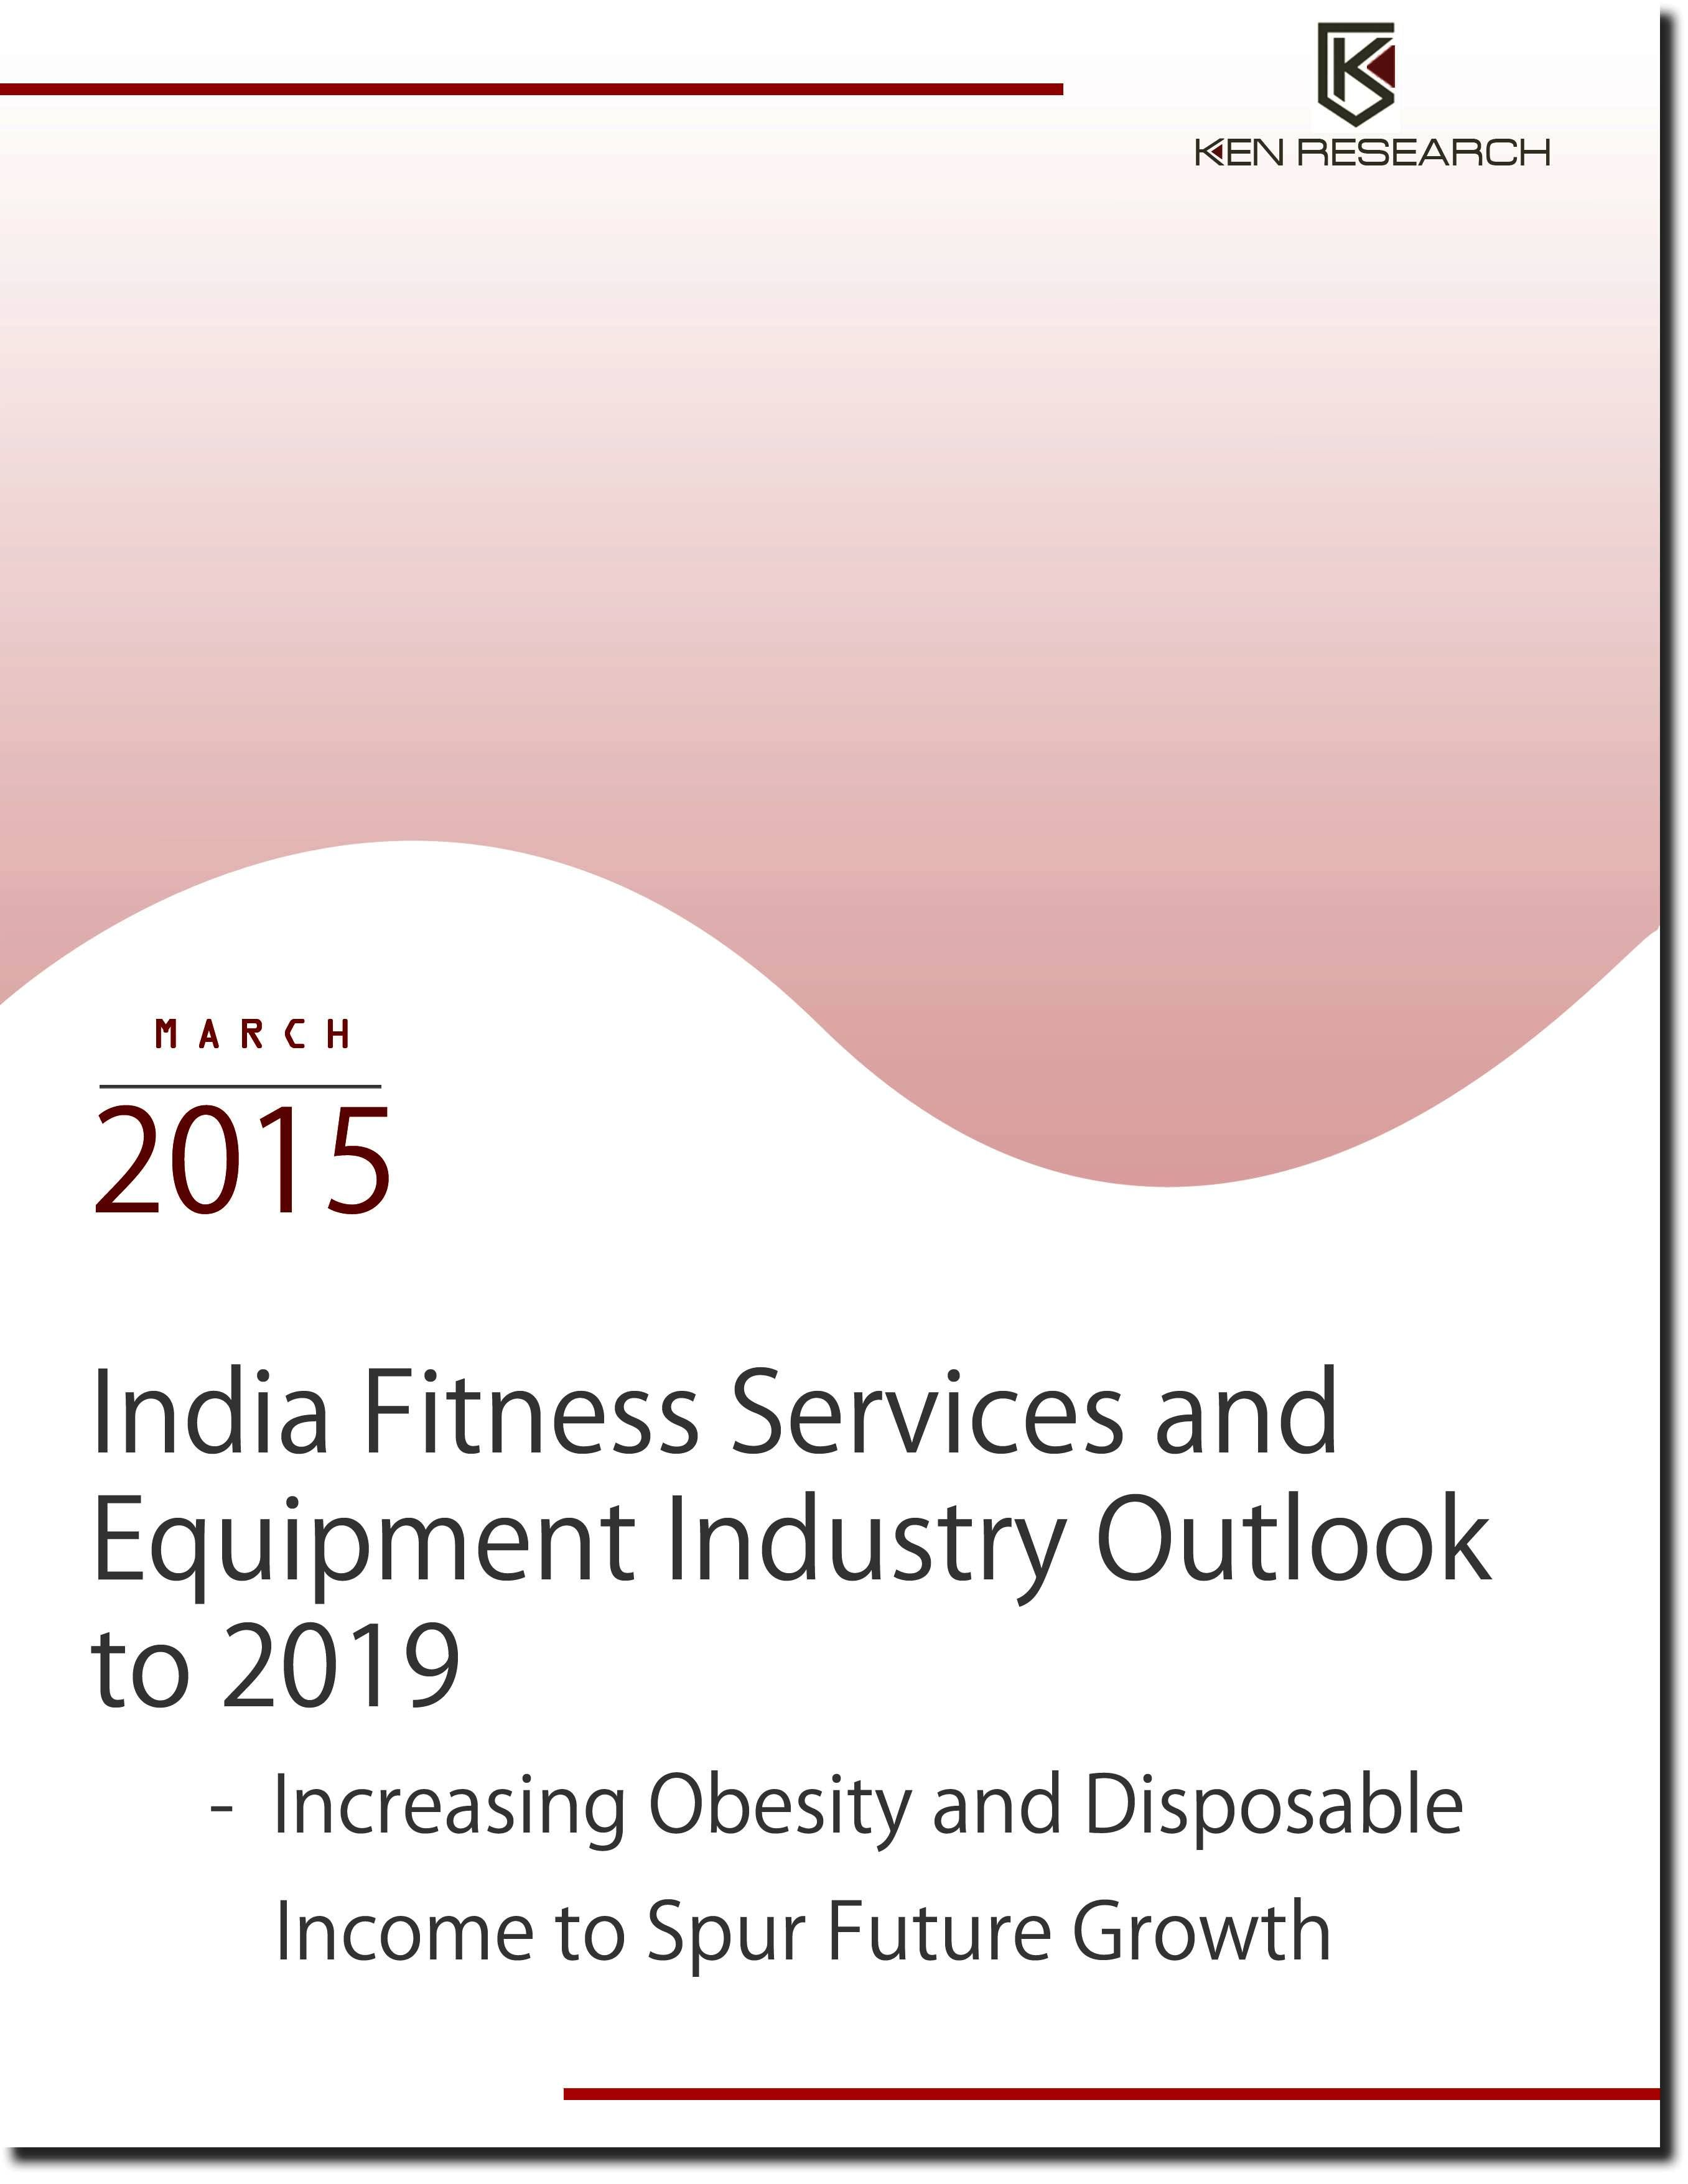 Ken Research India Fitness Services And Equipment Industry Outlook To 2019 Increasing Obesity And Disposable